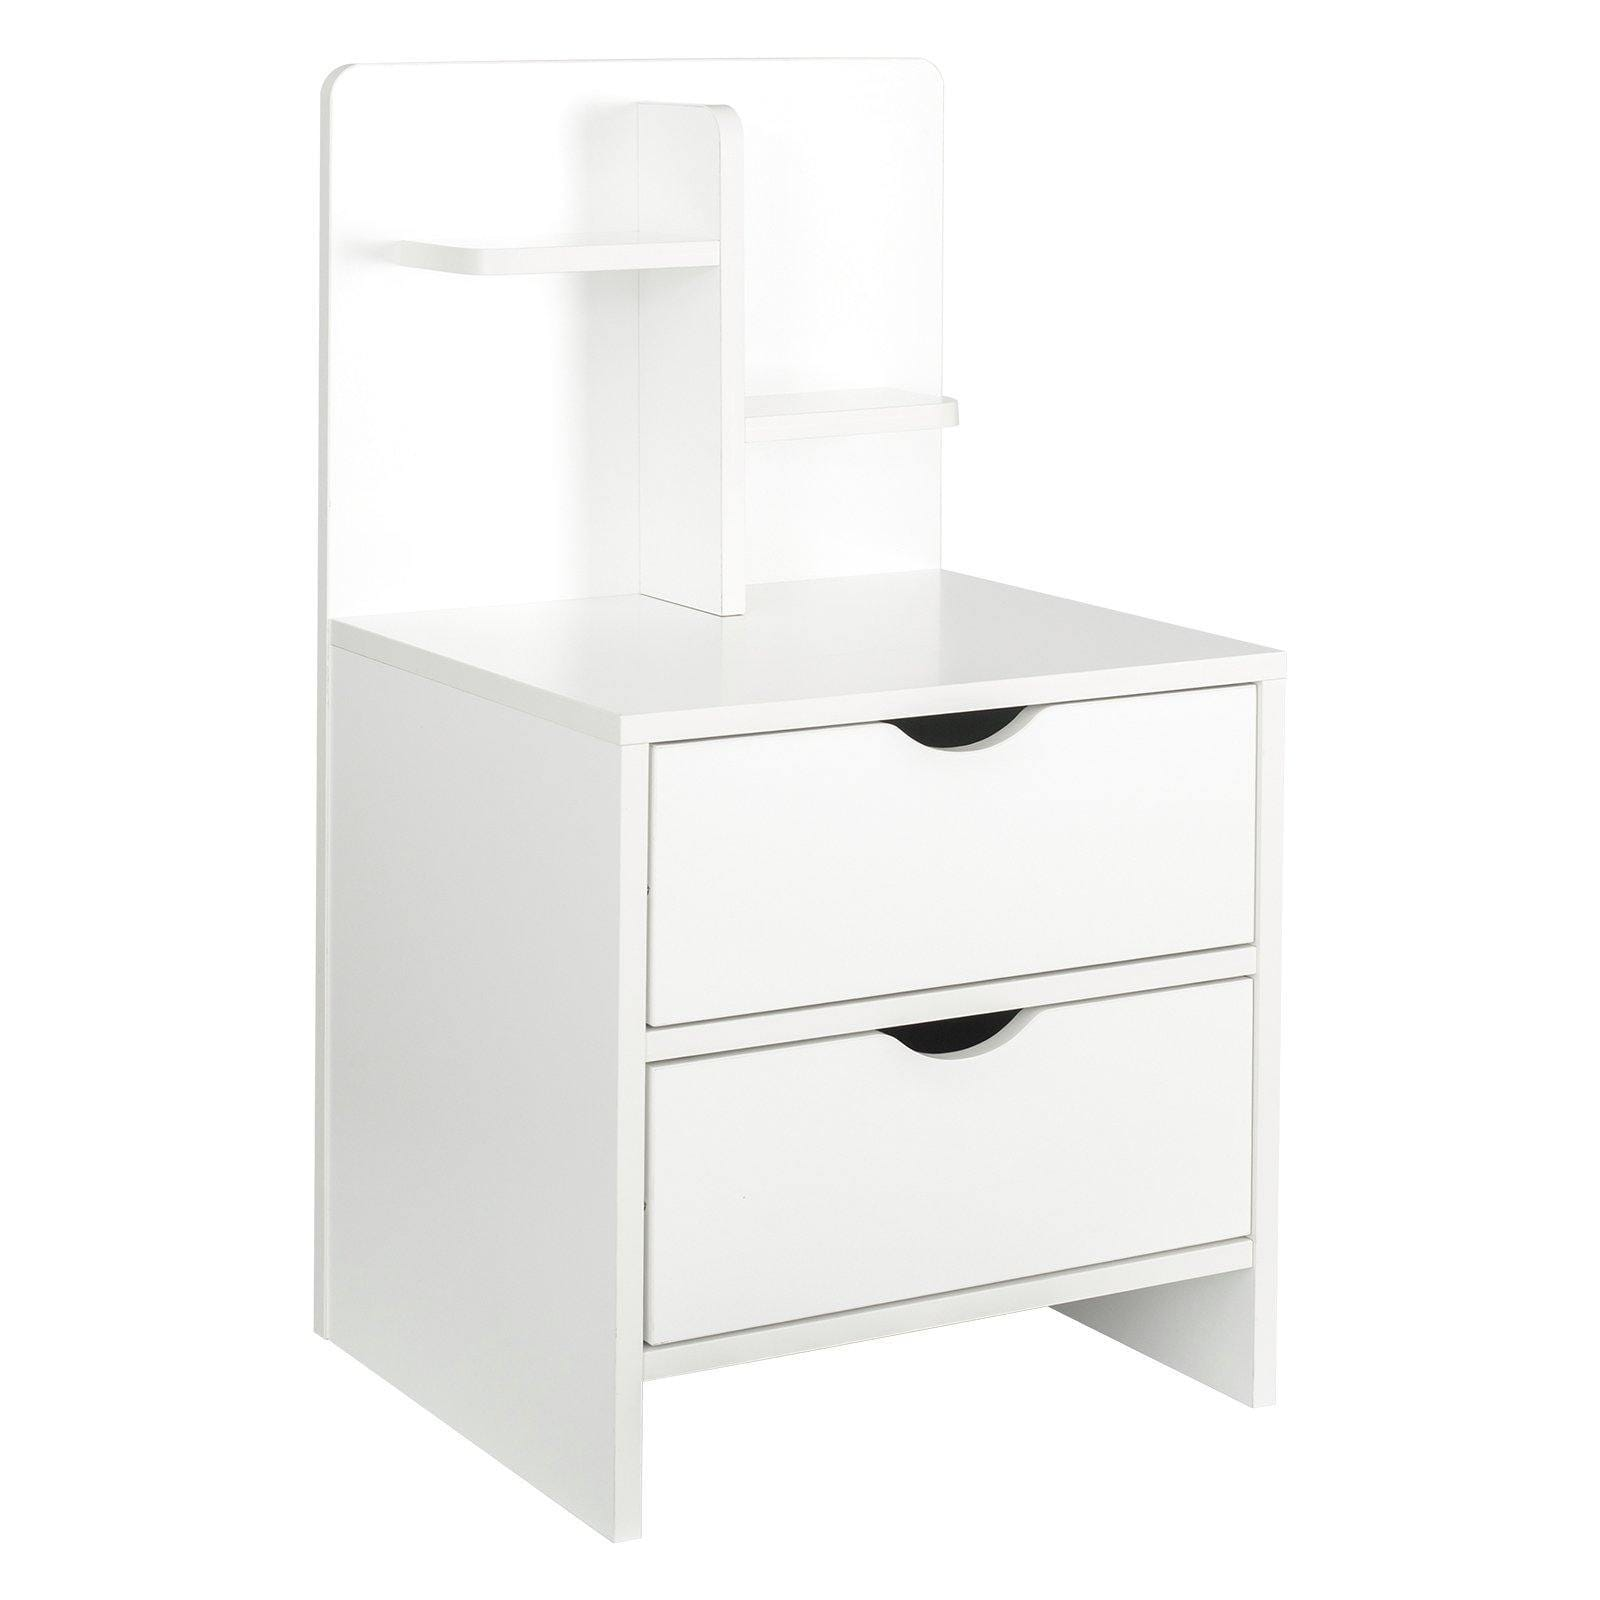 YUSING Solid Wood Color Storage Bedside Table